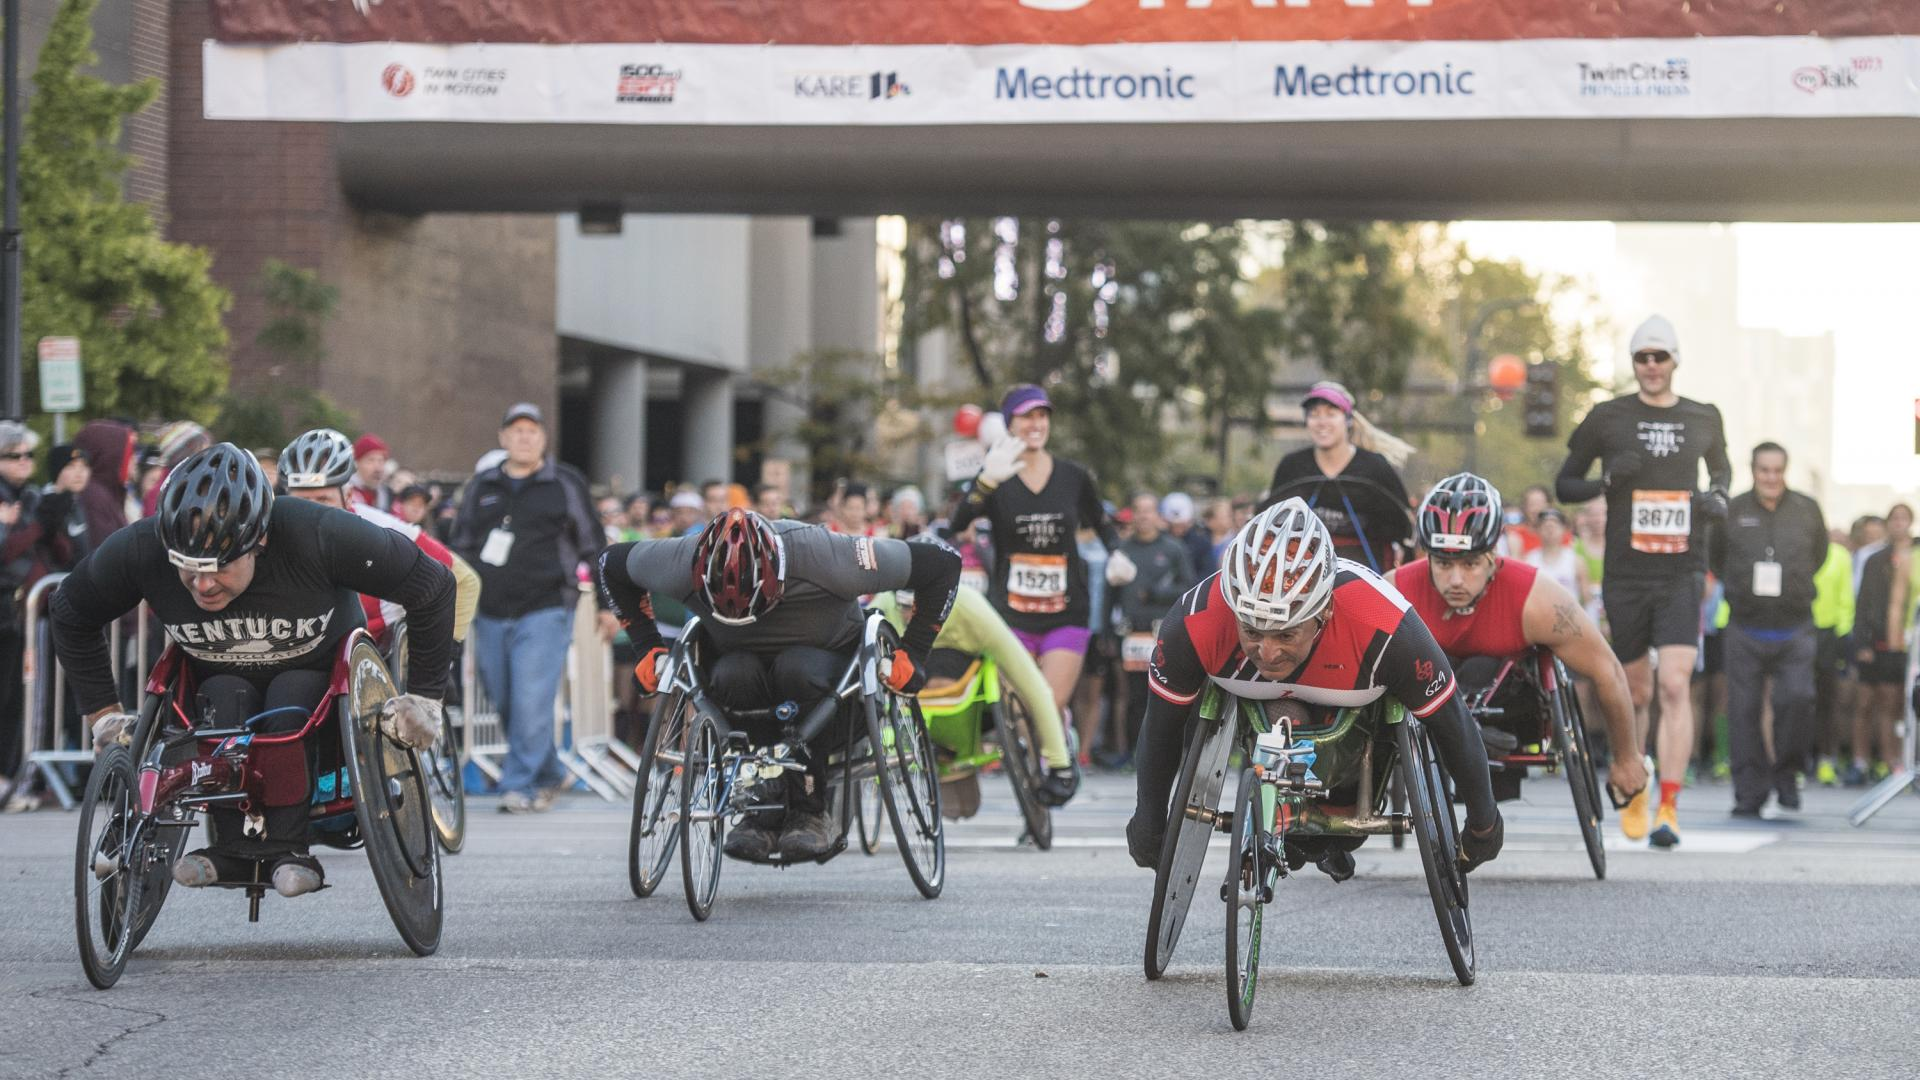 Wheelers at the Twin Cities Marathon